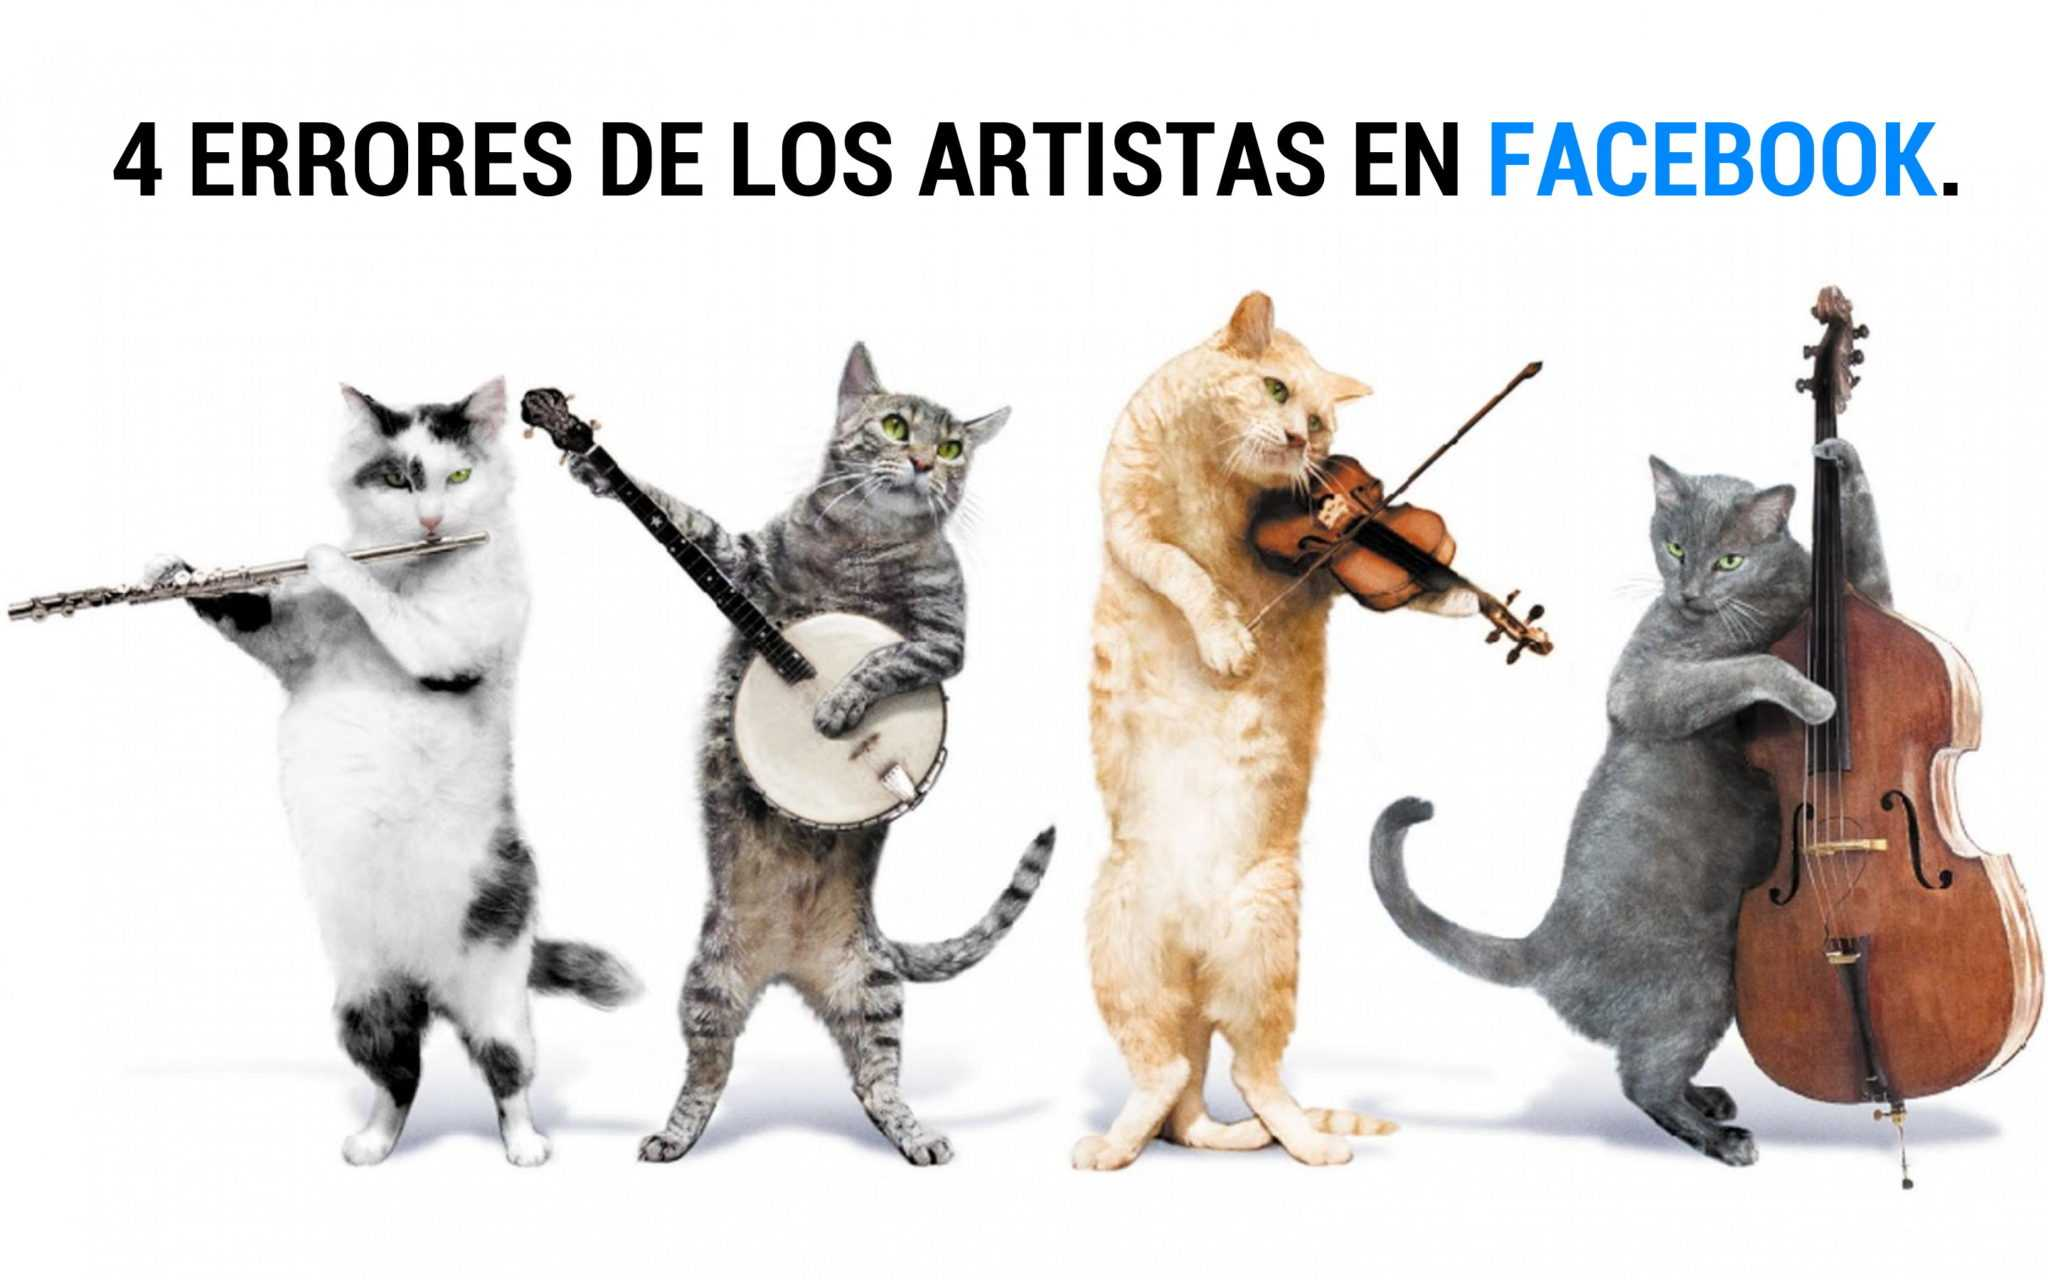 4 errores en Facebook